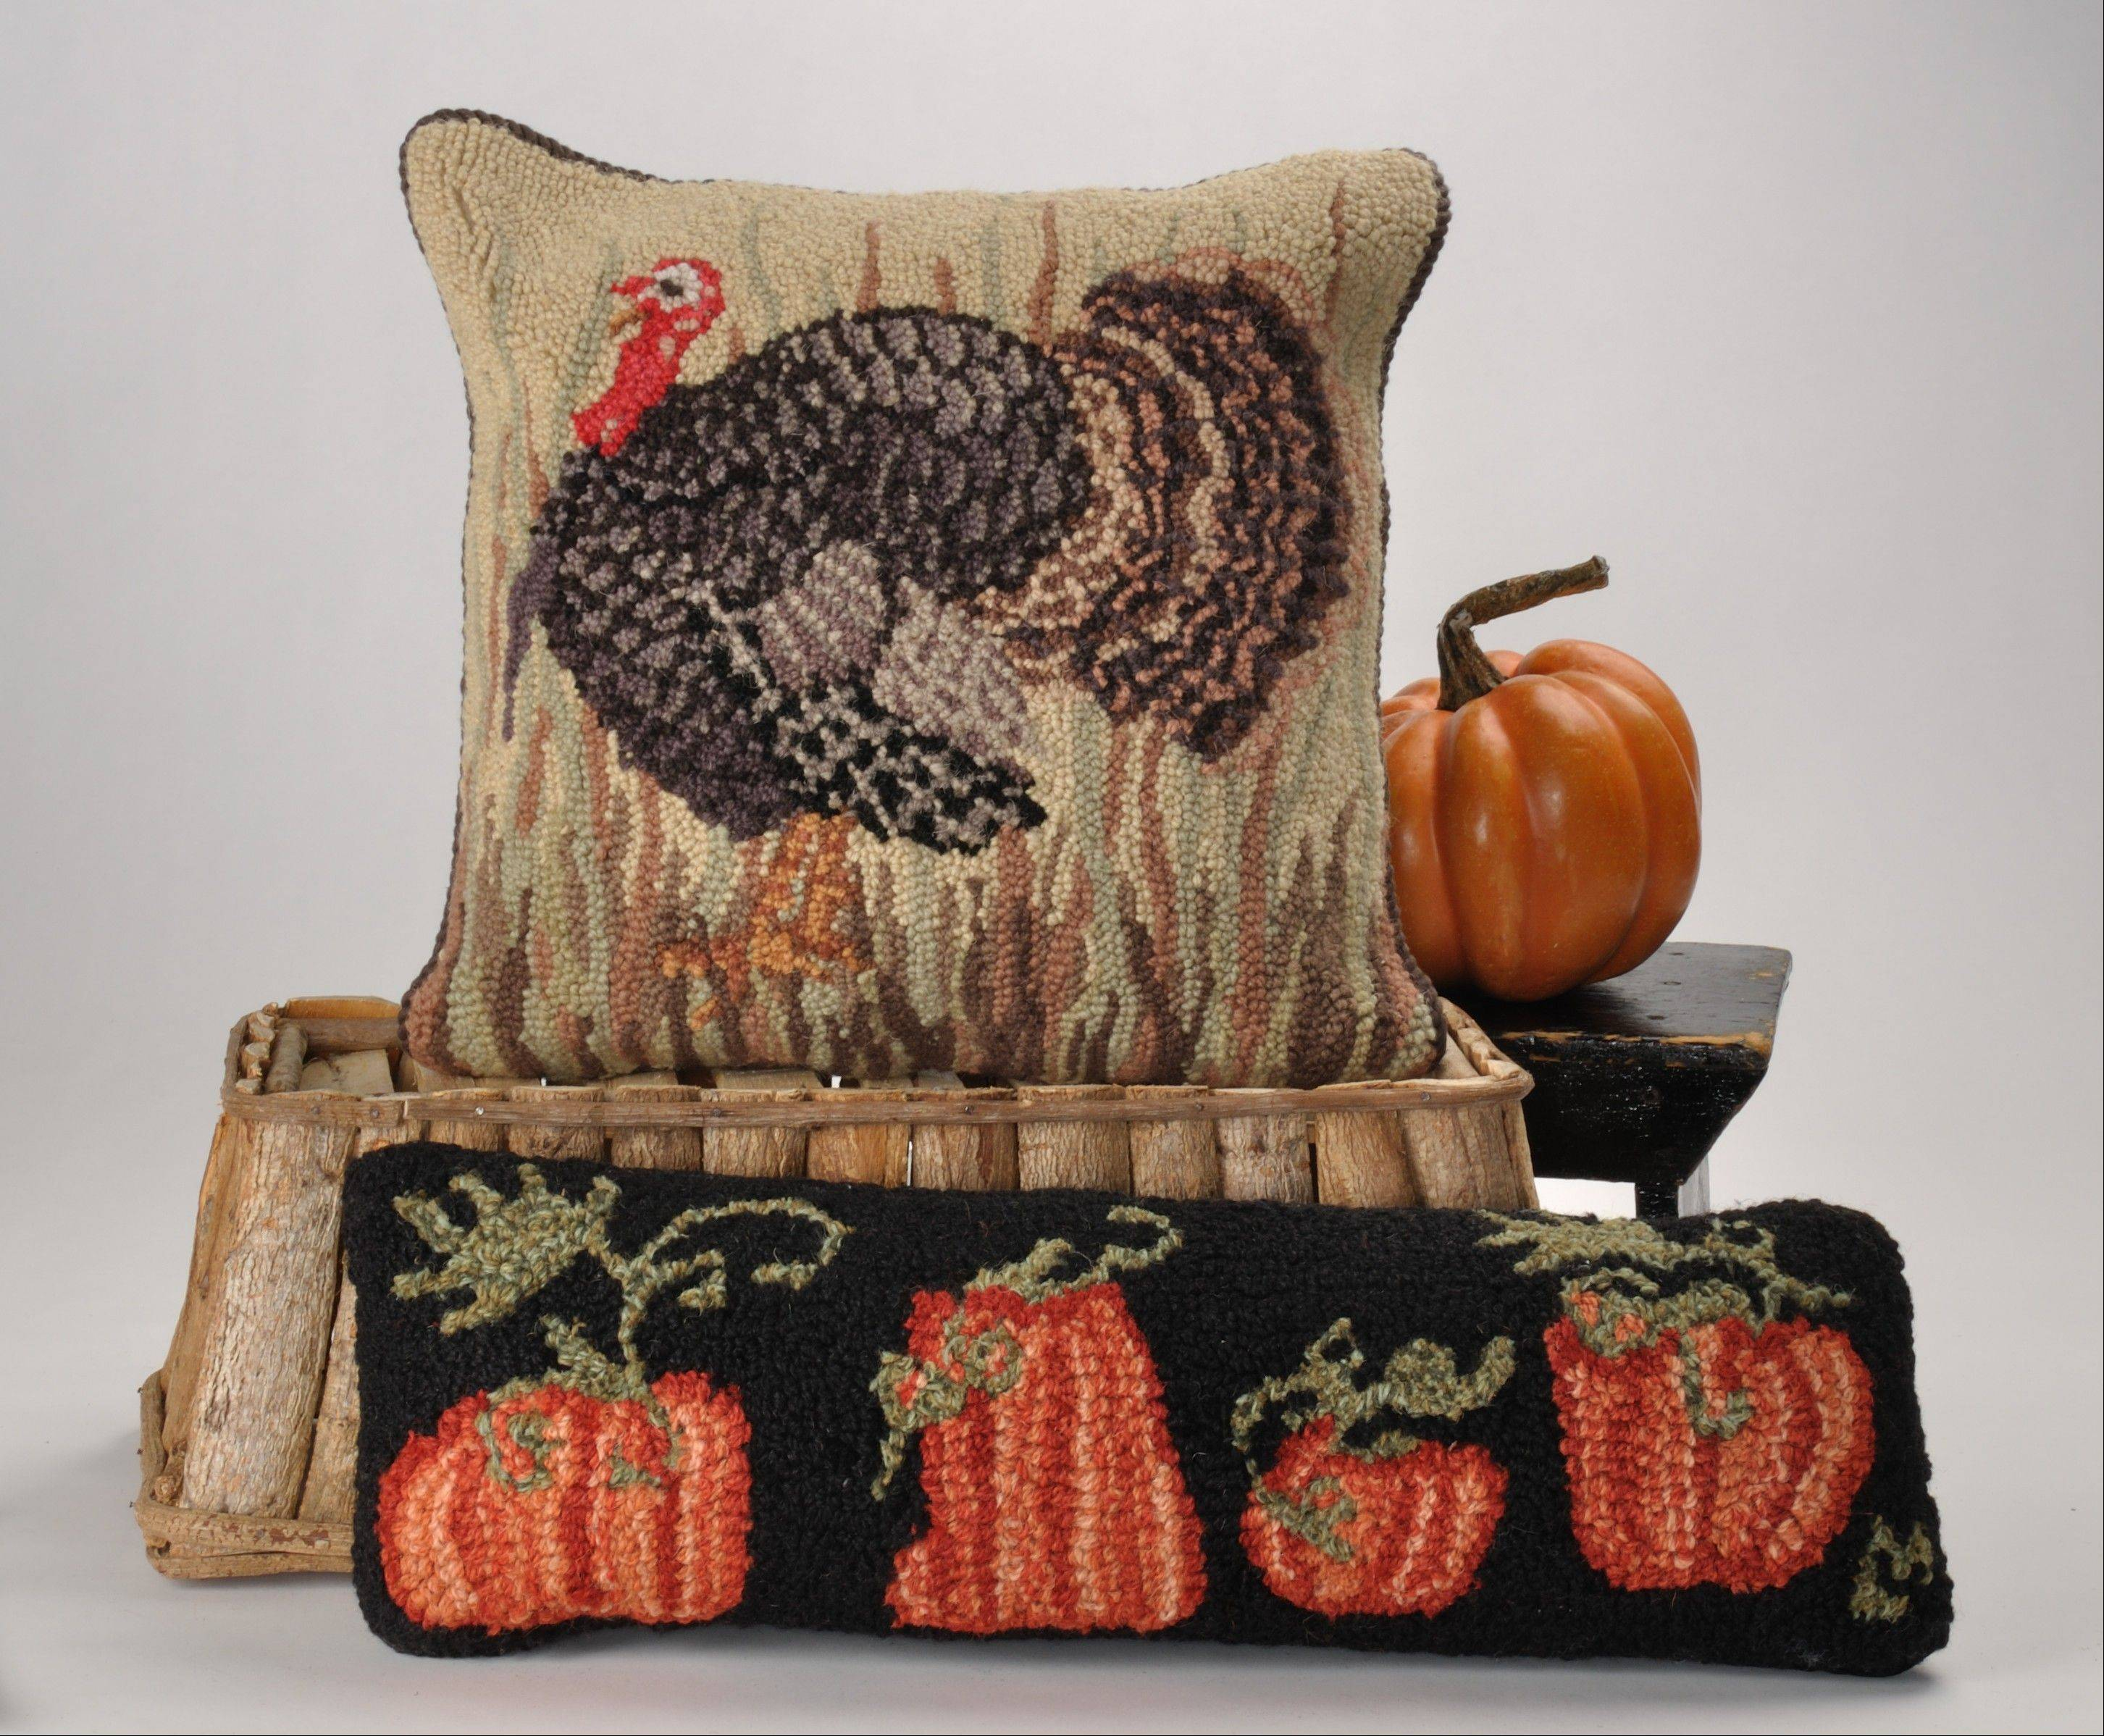 Graphic pillows add a soft, comfy feel to the fall decor.